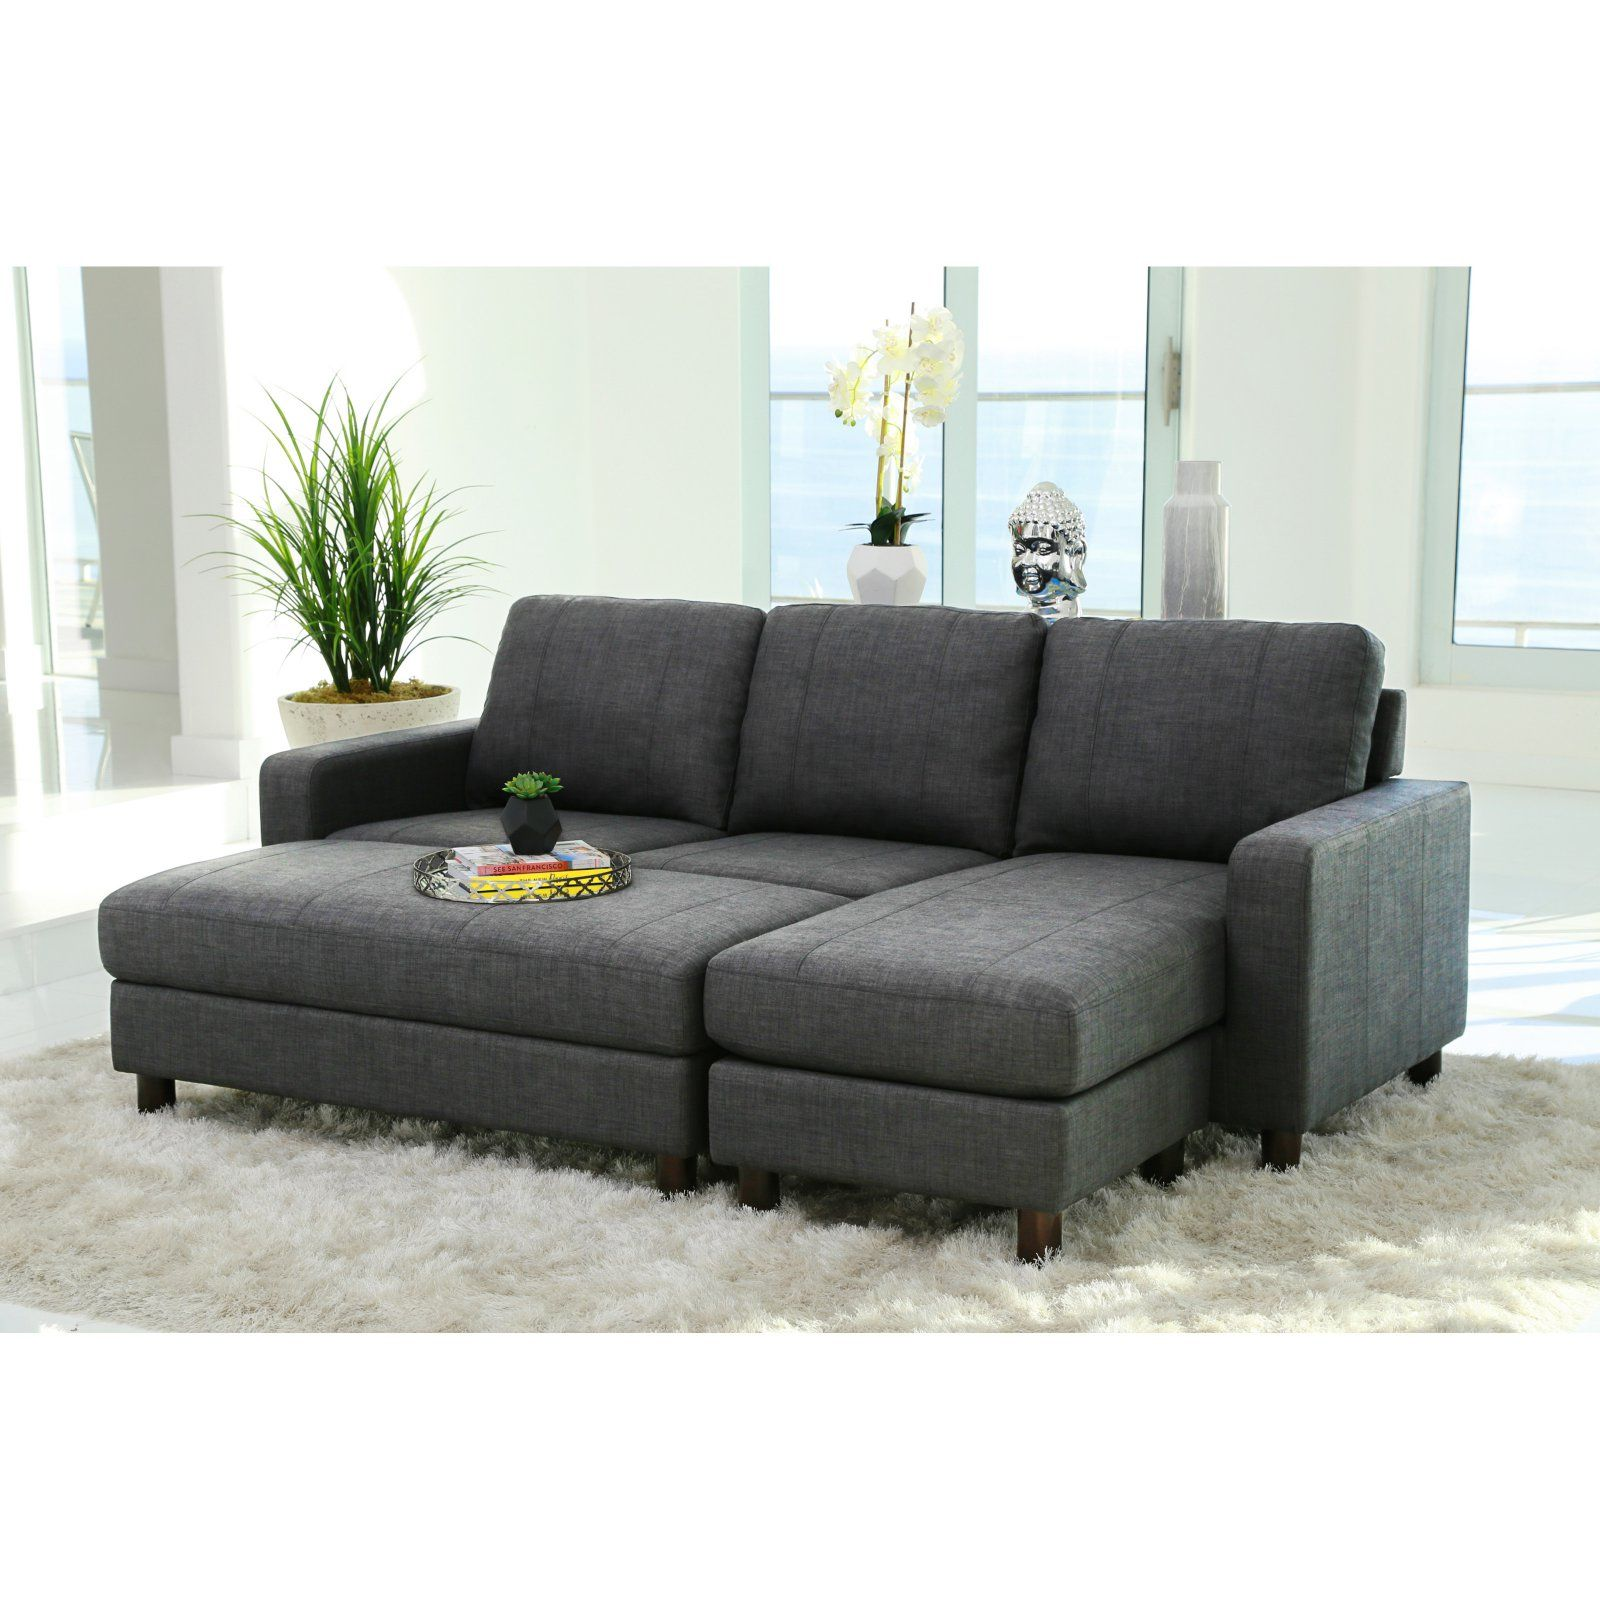 Abbyson Stanford Fabric Reversible Sectional Sofa With Storage